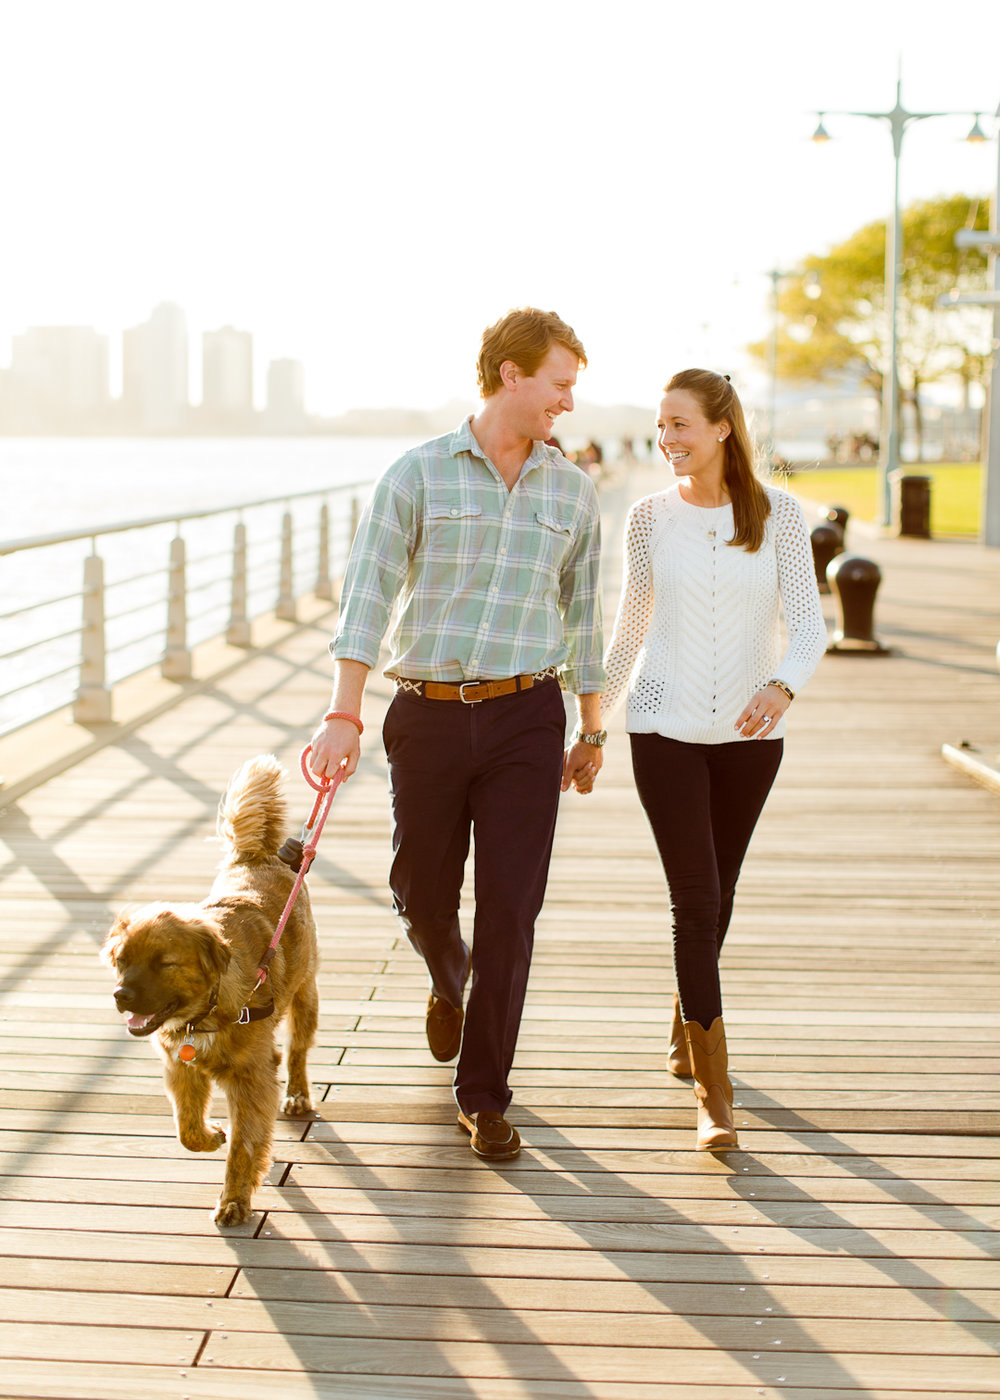 Melissa Kruse Photography - Megan & Tyler West Village Engagement Photos-104.jpg